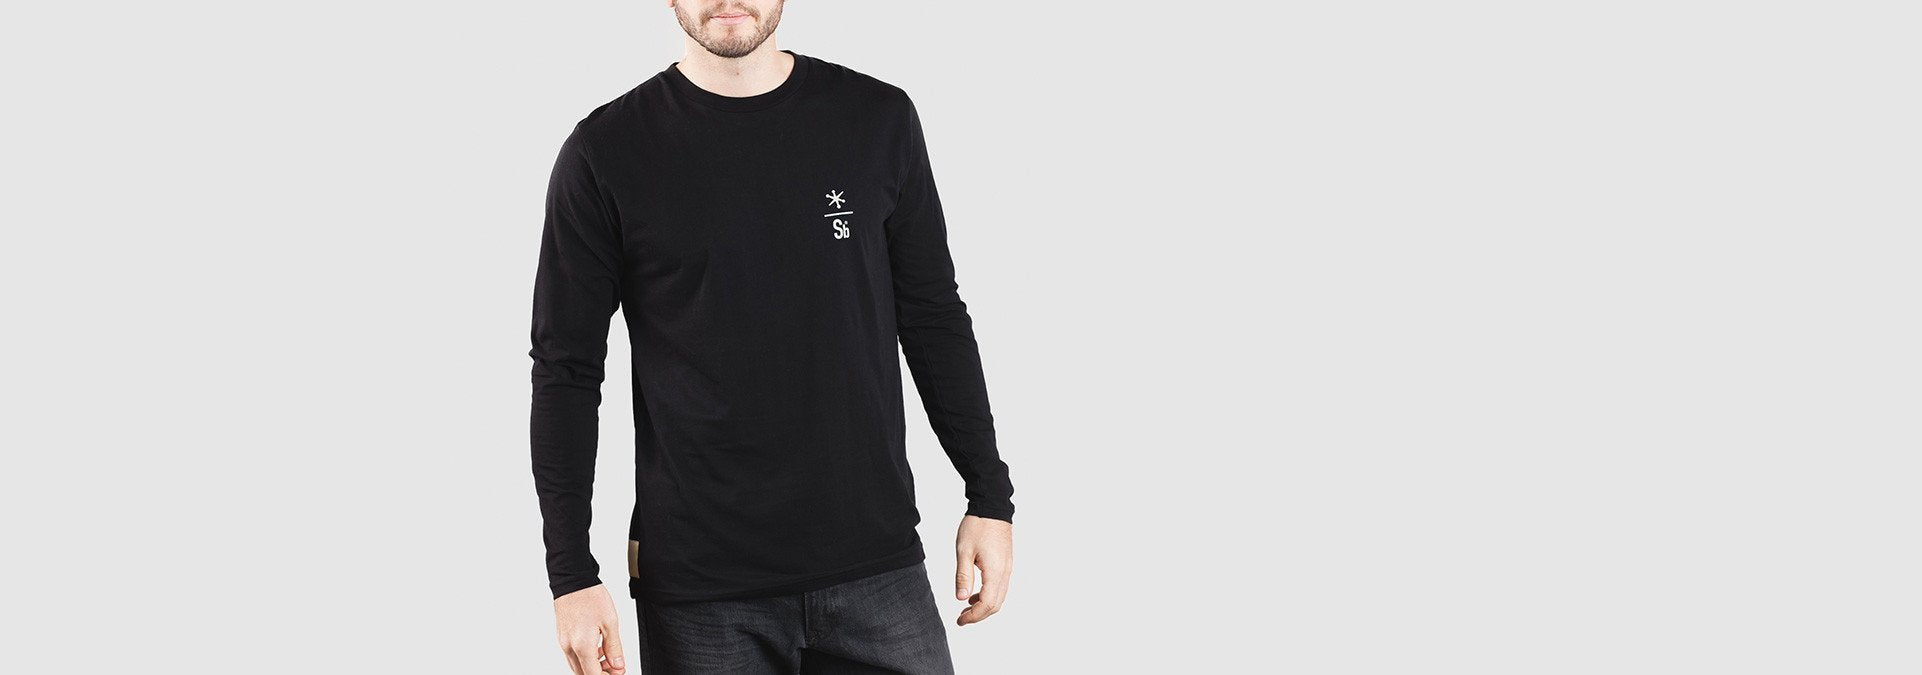 Core One LS T-Shirt Black